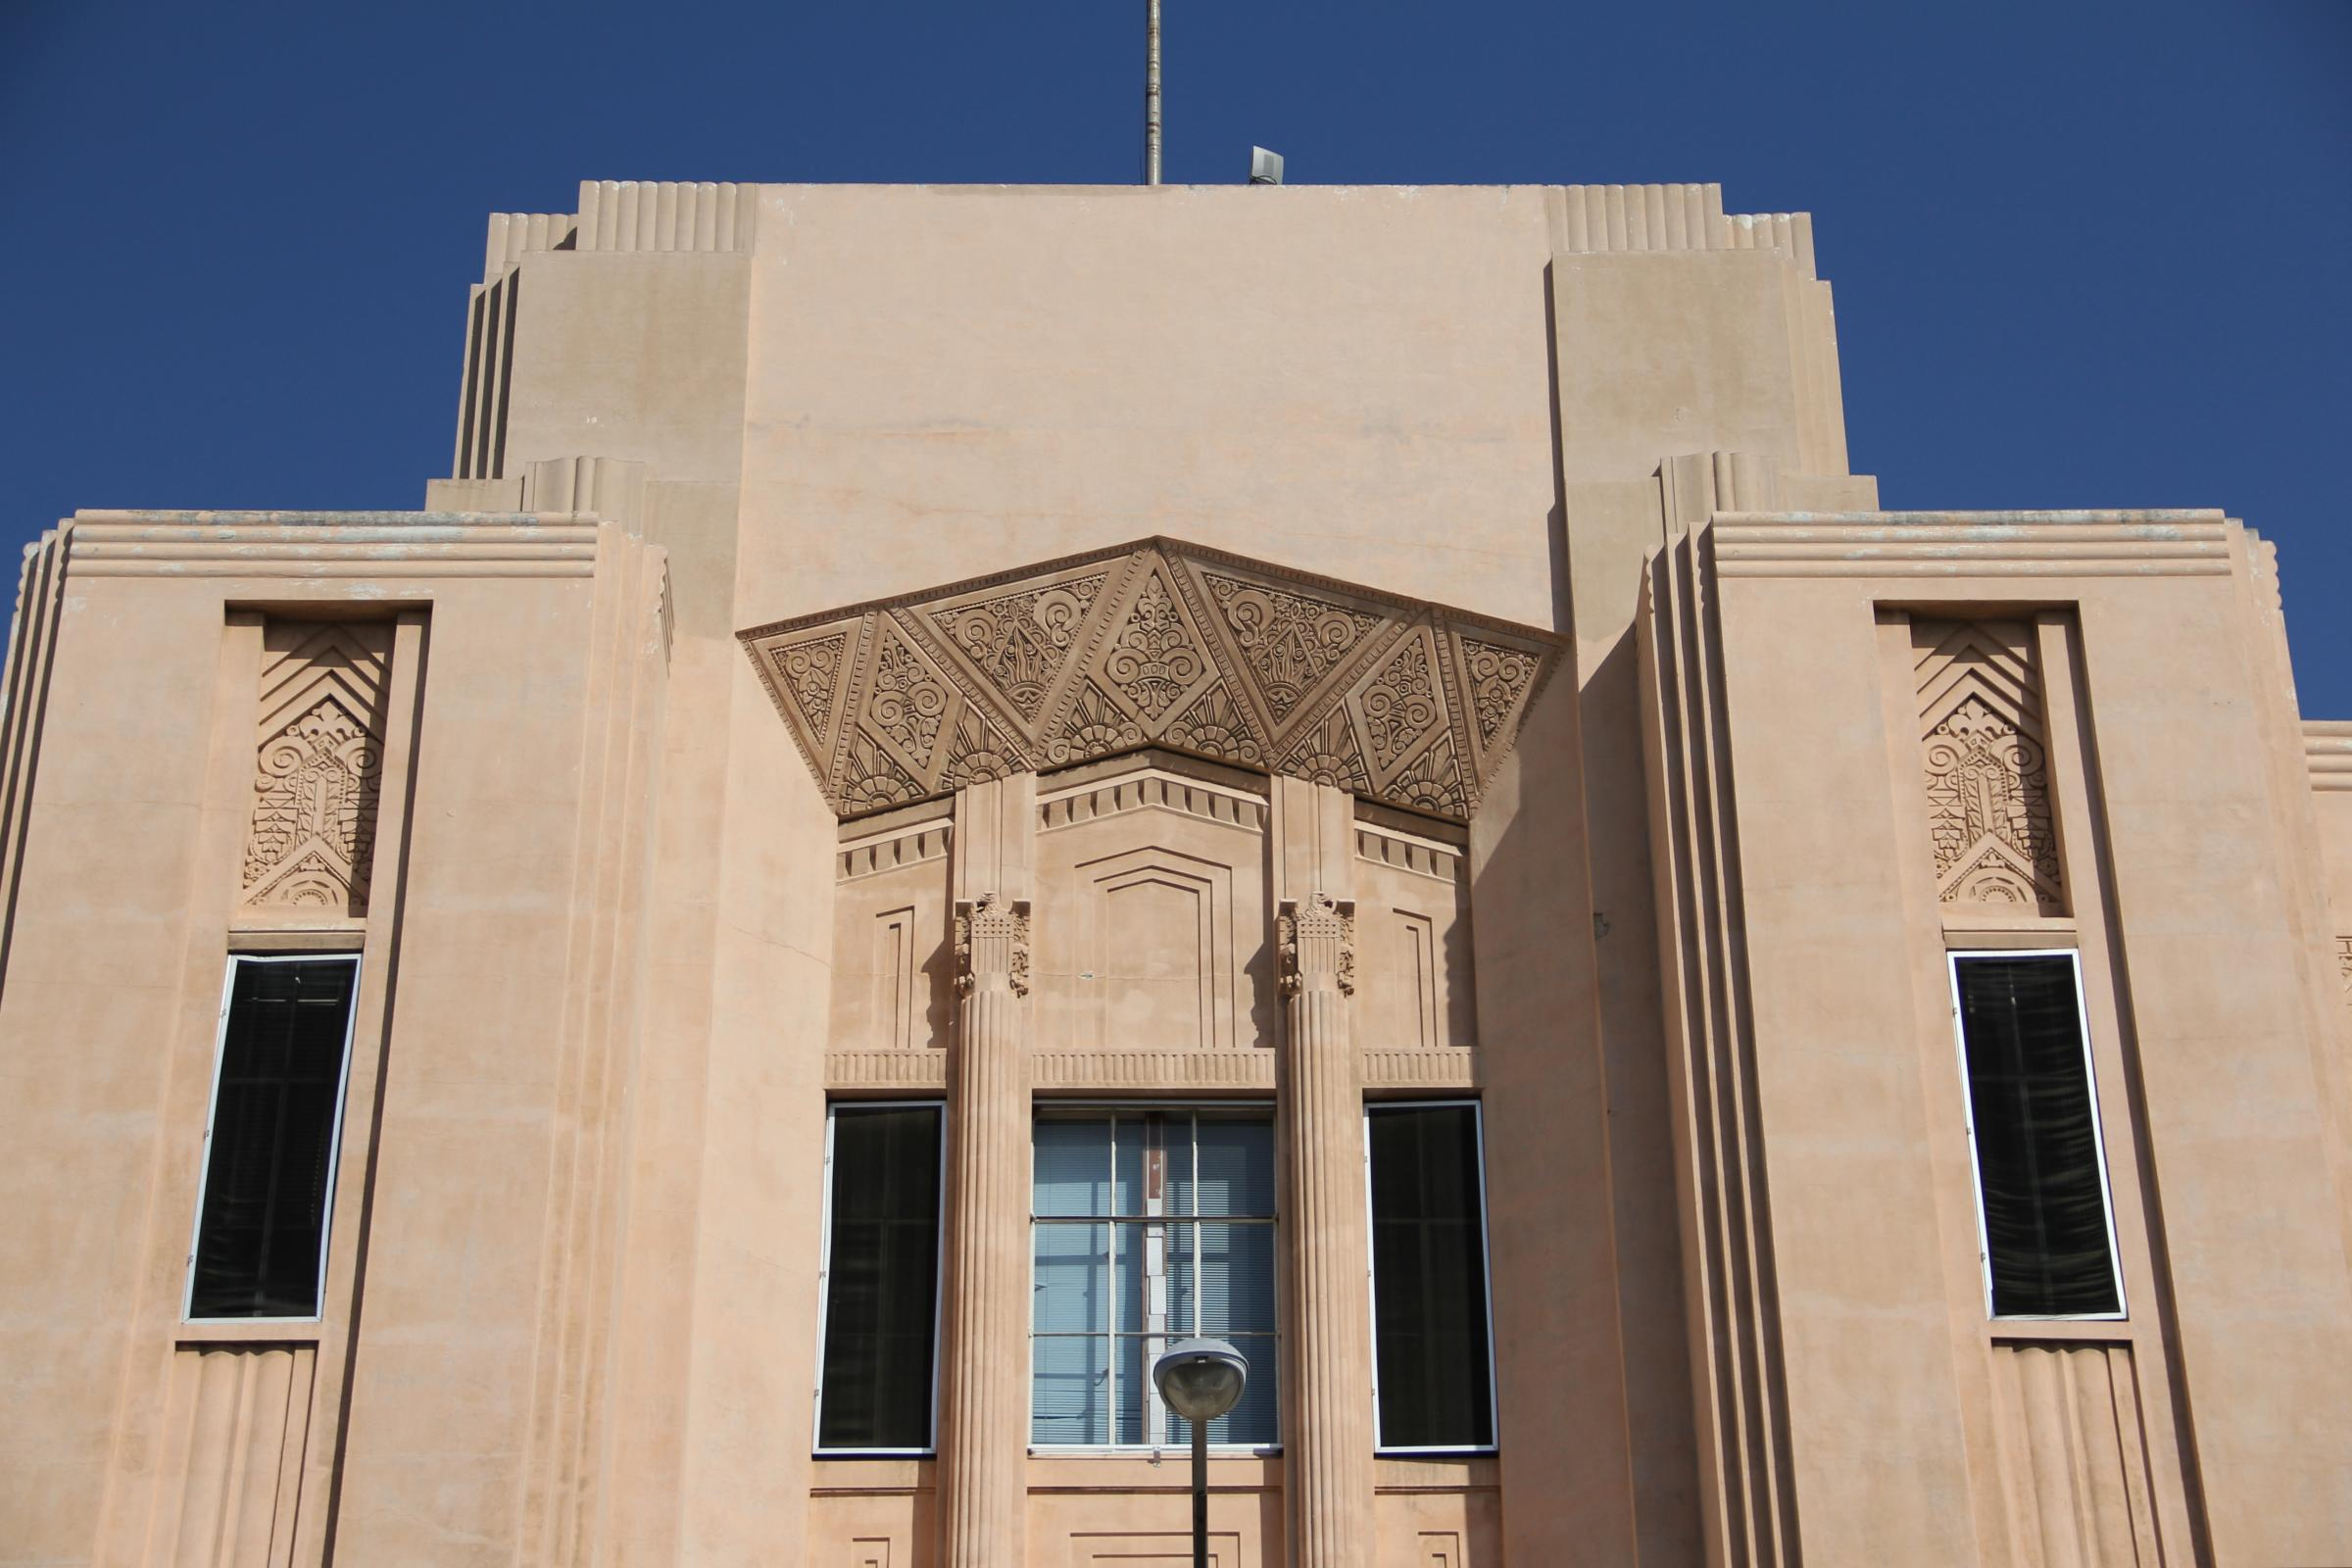 Photos art deco architecture in the san joaquin valley for Art deco building materials